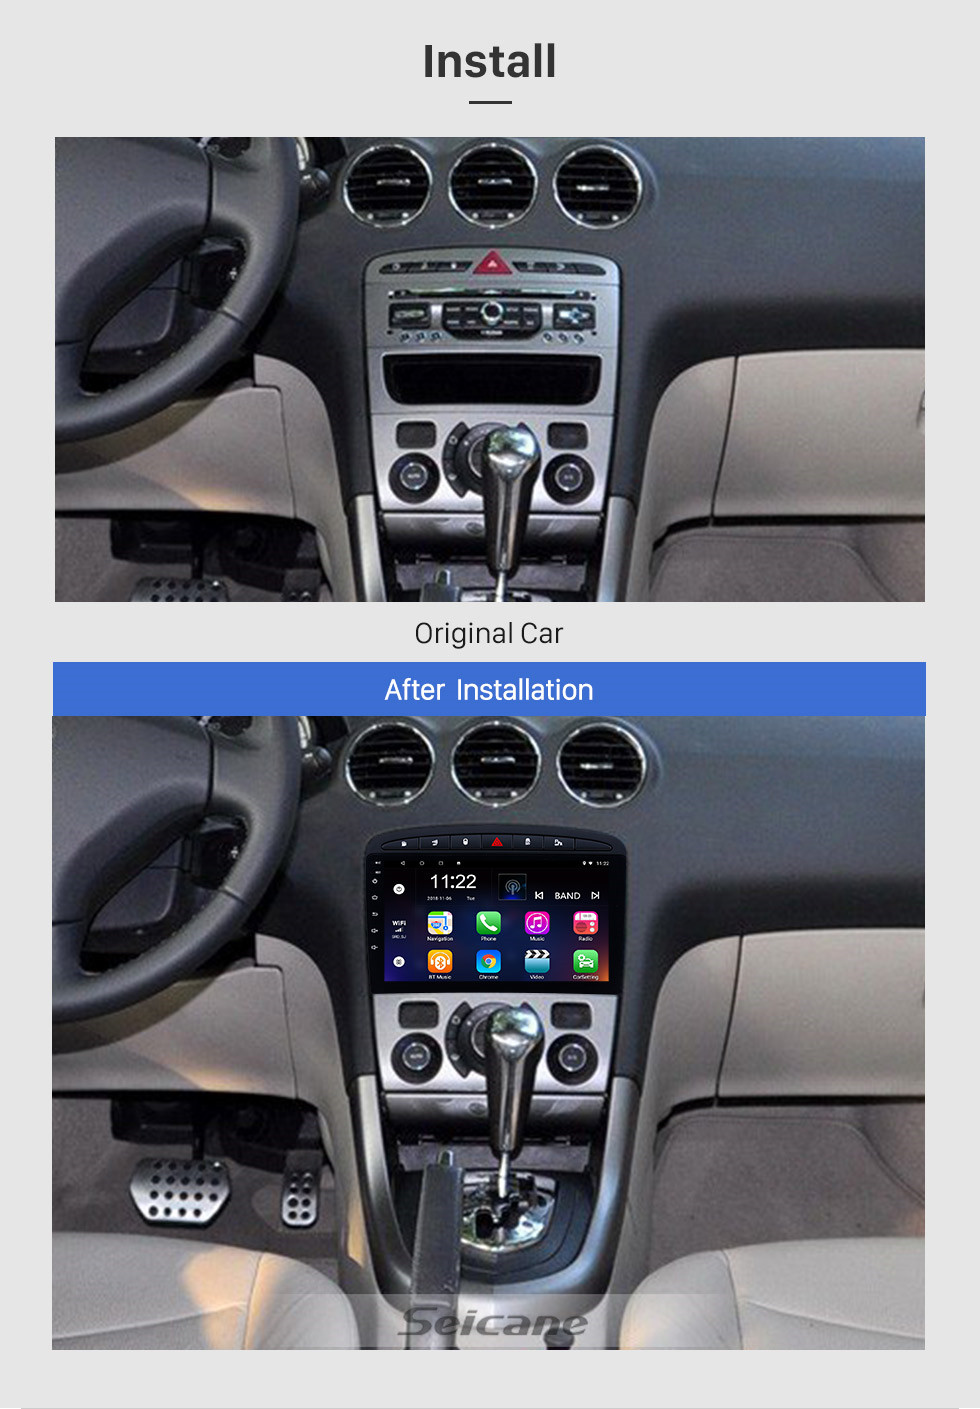 Seicane Aftermarket 9 inch Android 10.0 car stereo for 2010-2016 PEUGEOT 408 with GPS Navigation Bluetooth Car stereo Head Unit Touch Screen Mirror Link OBD2 3G WiFi Video USB SD